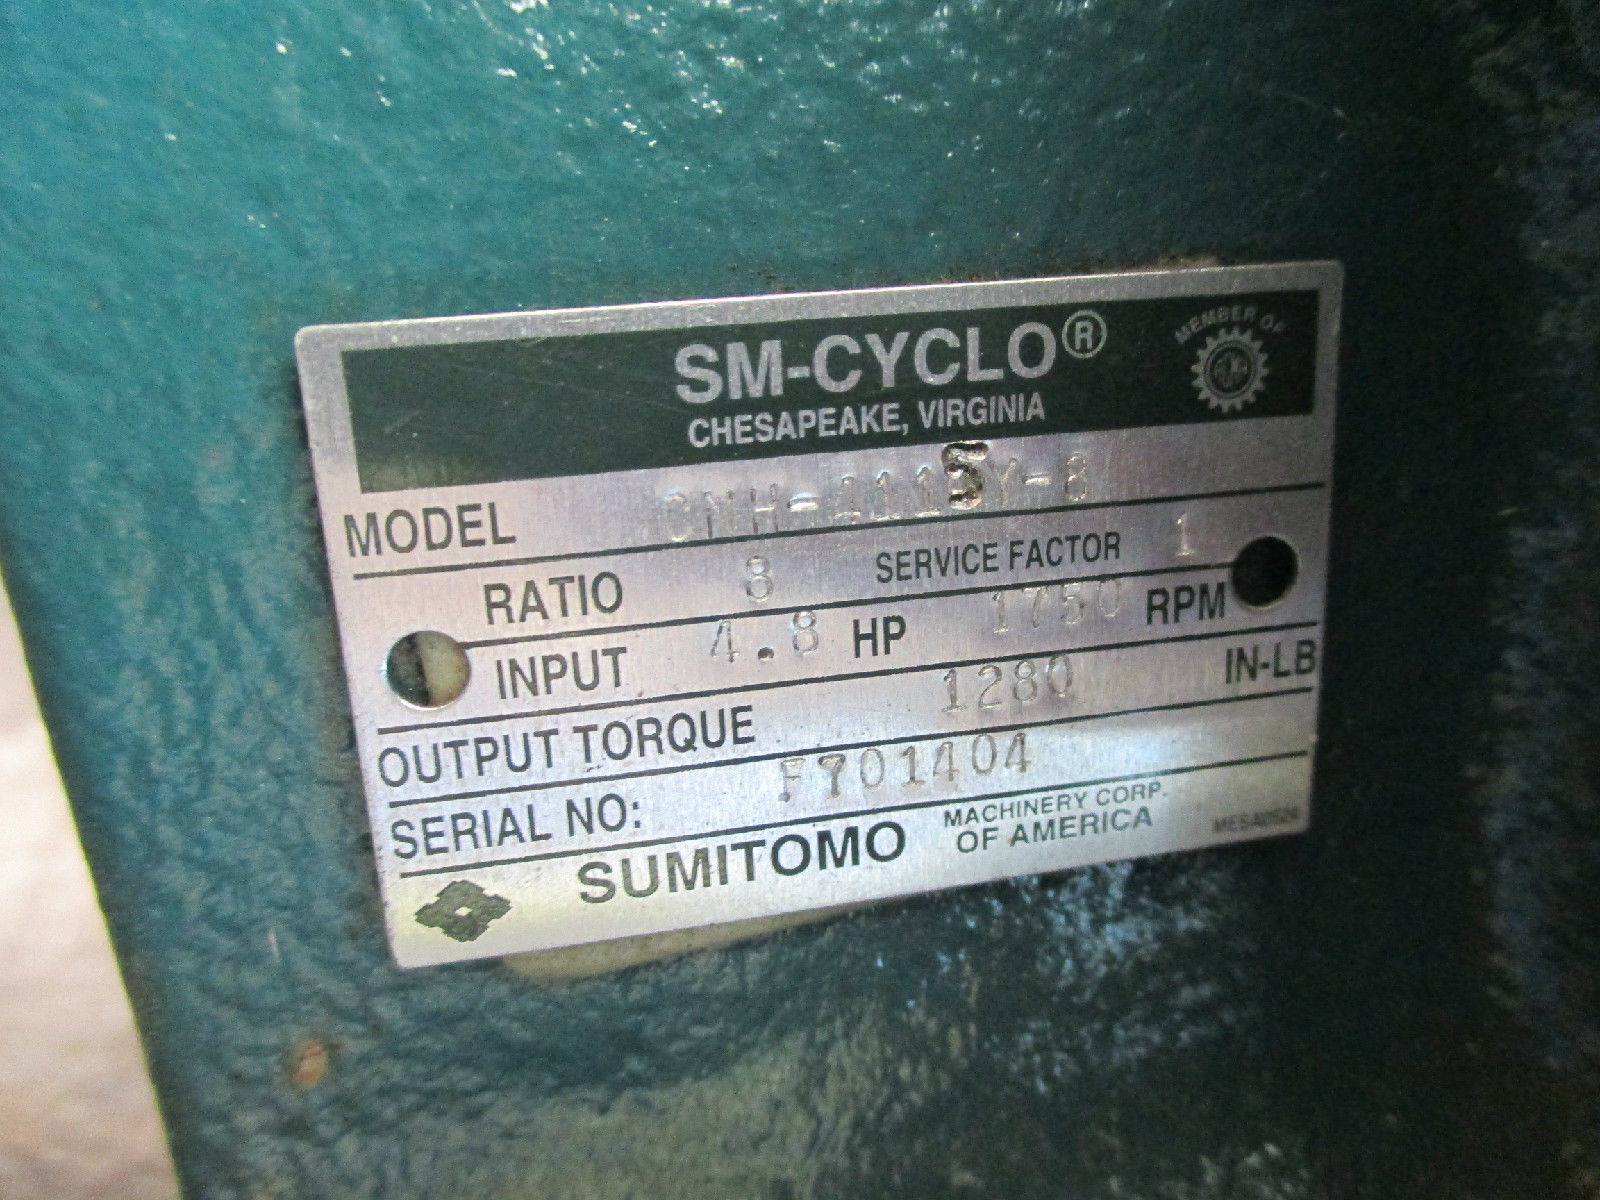 SM CYCLO SUMITOMO CNH 41154 8 SPEED REDUCER GEAR BOX MADE IN USA MOTOR